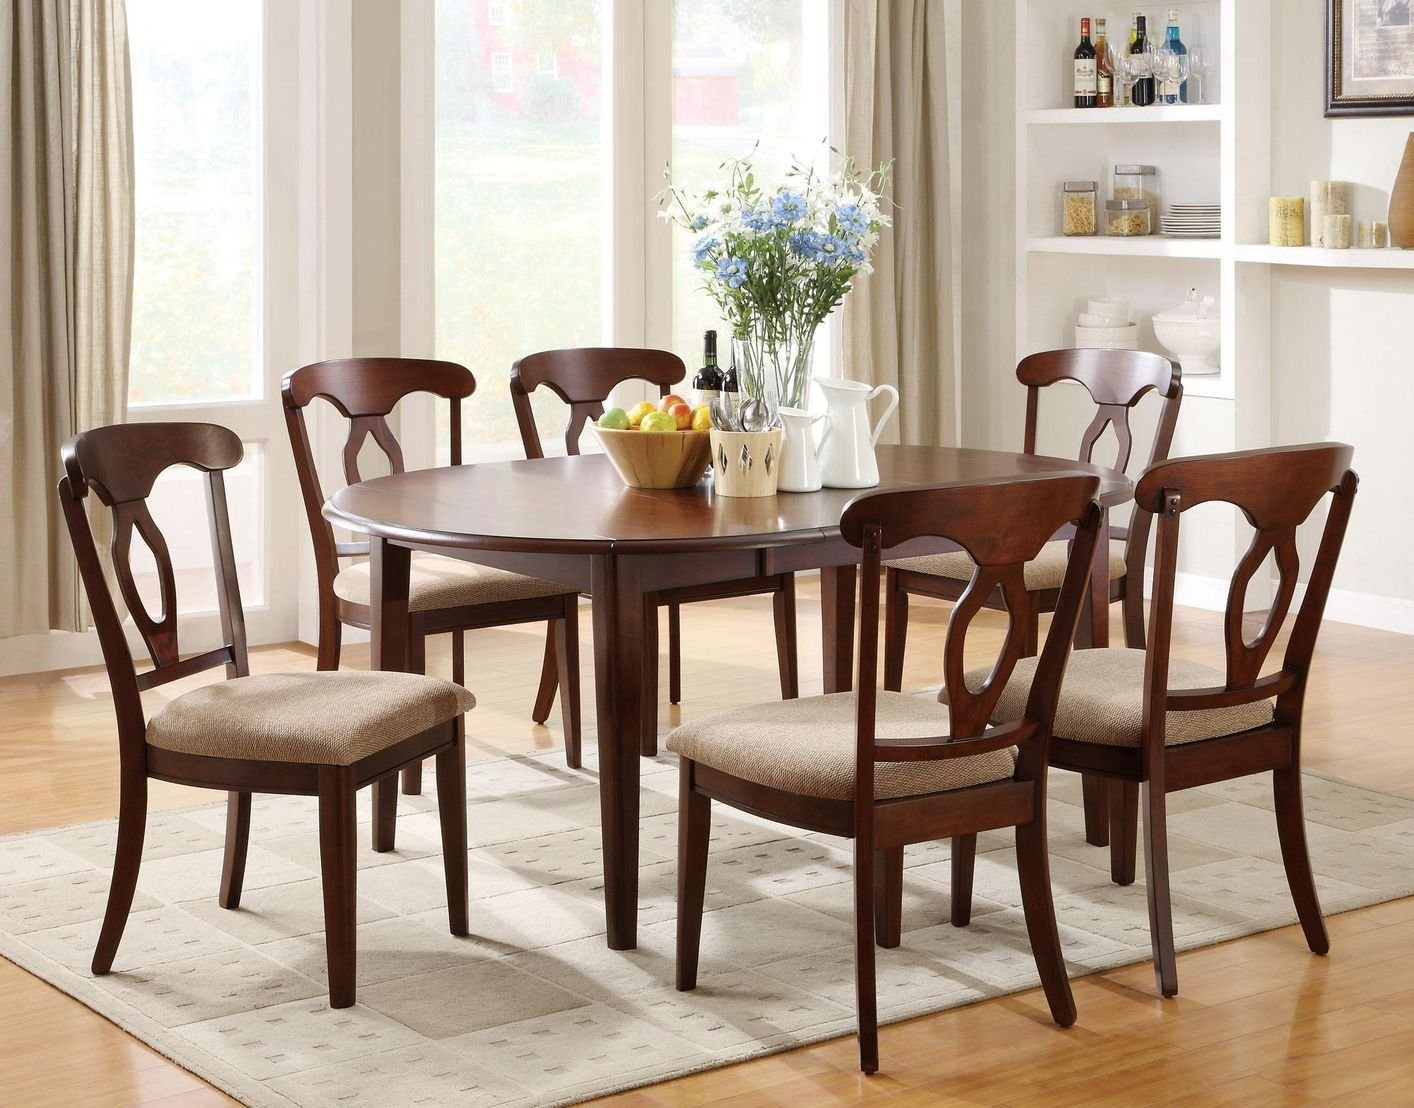 accommodate an array of dinner party sizes with this versatile oval dining table - Wooden Dining Table With Chairs